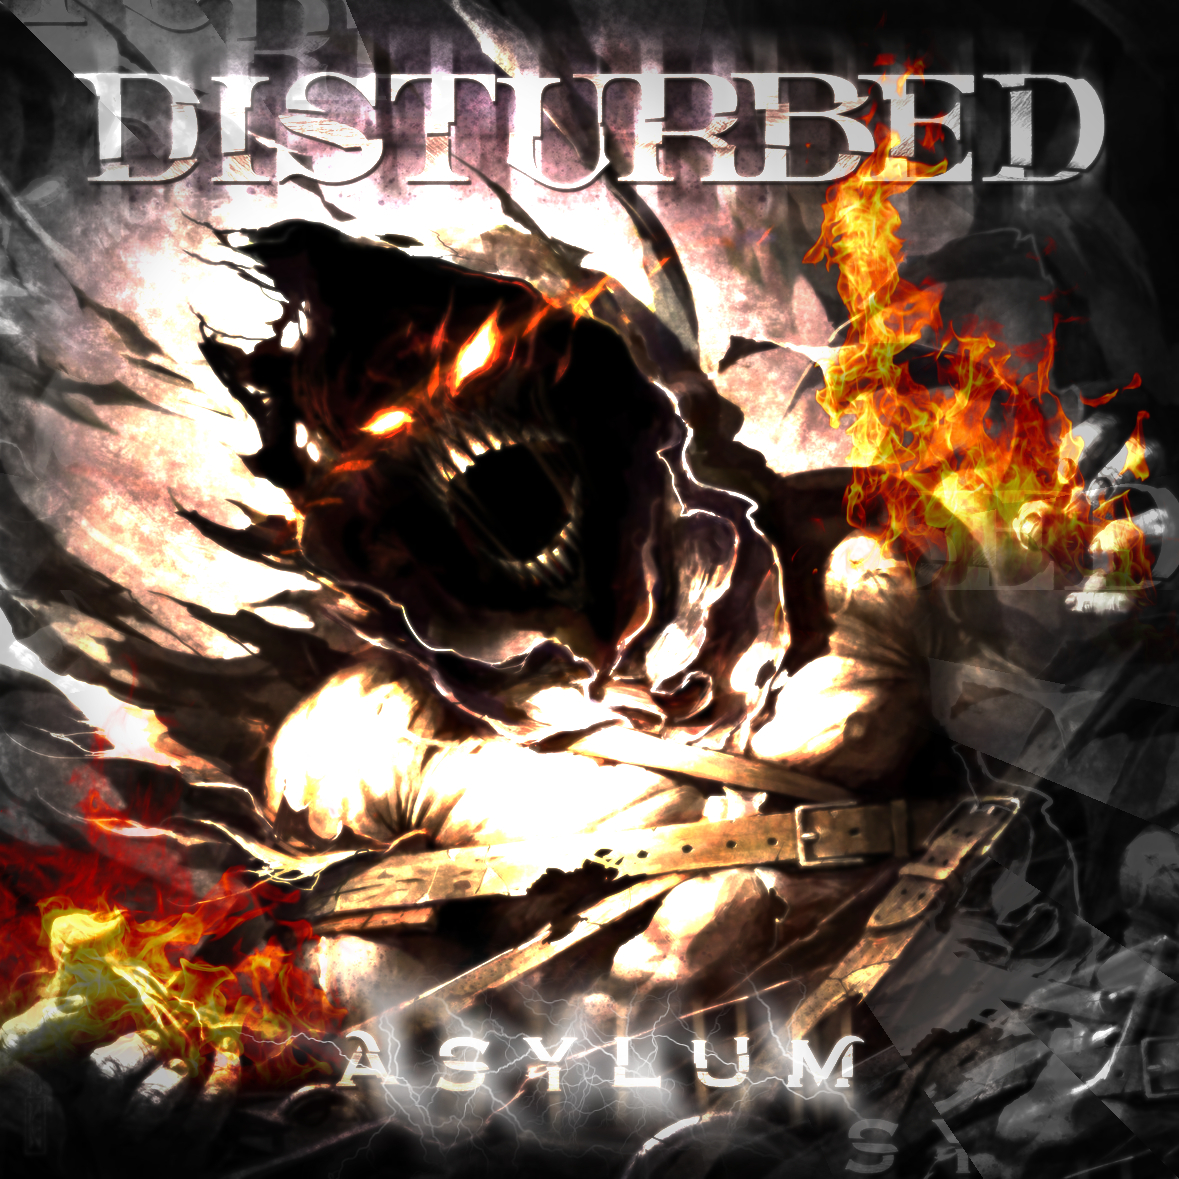 Disturbed Asylum Wallpaper - WallpaperSafari